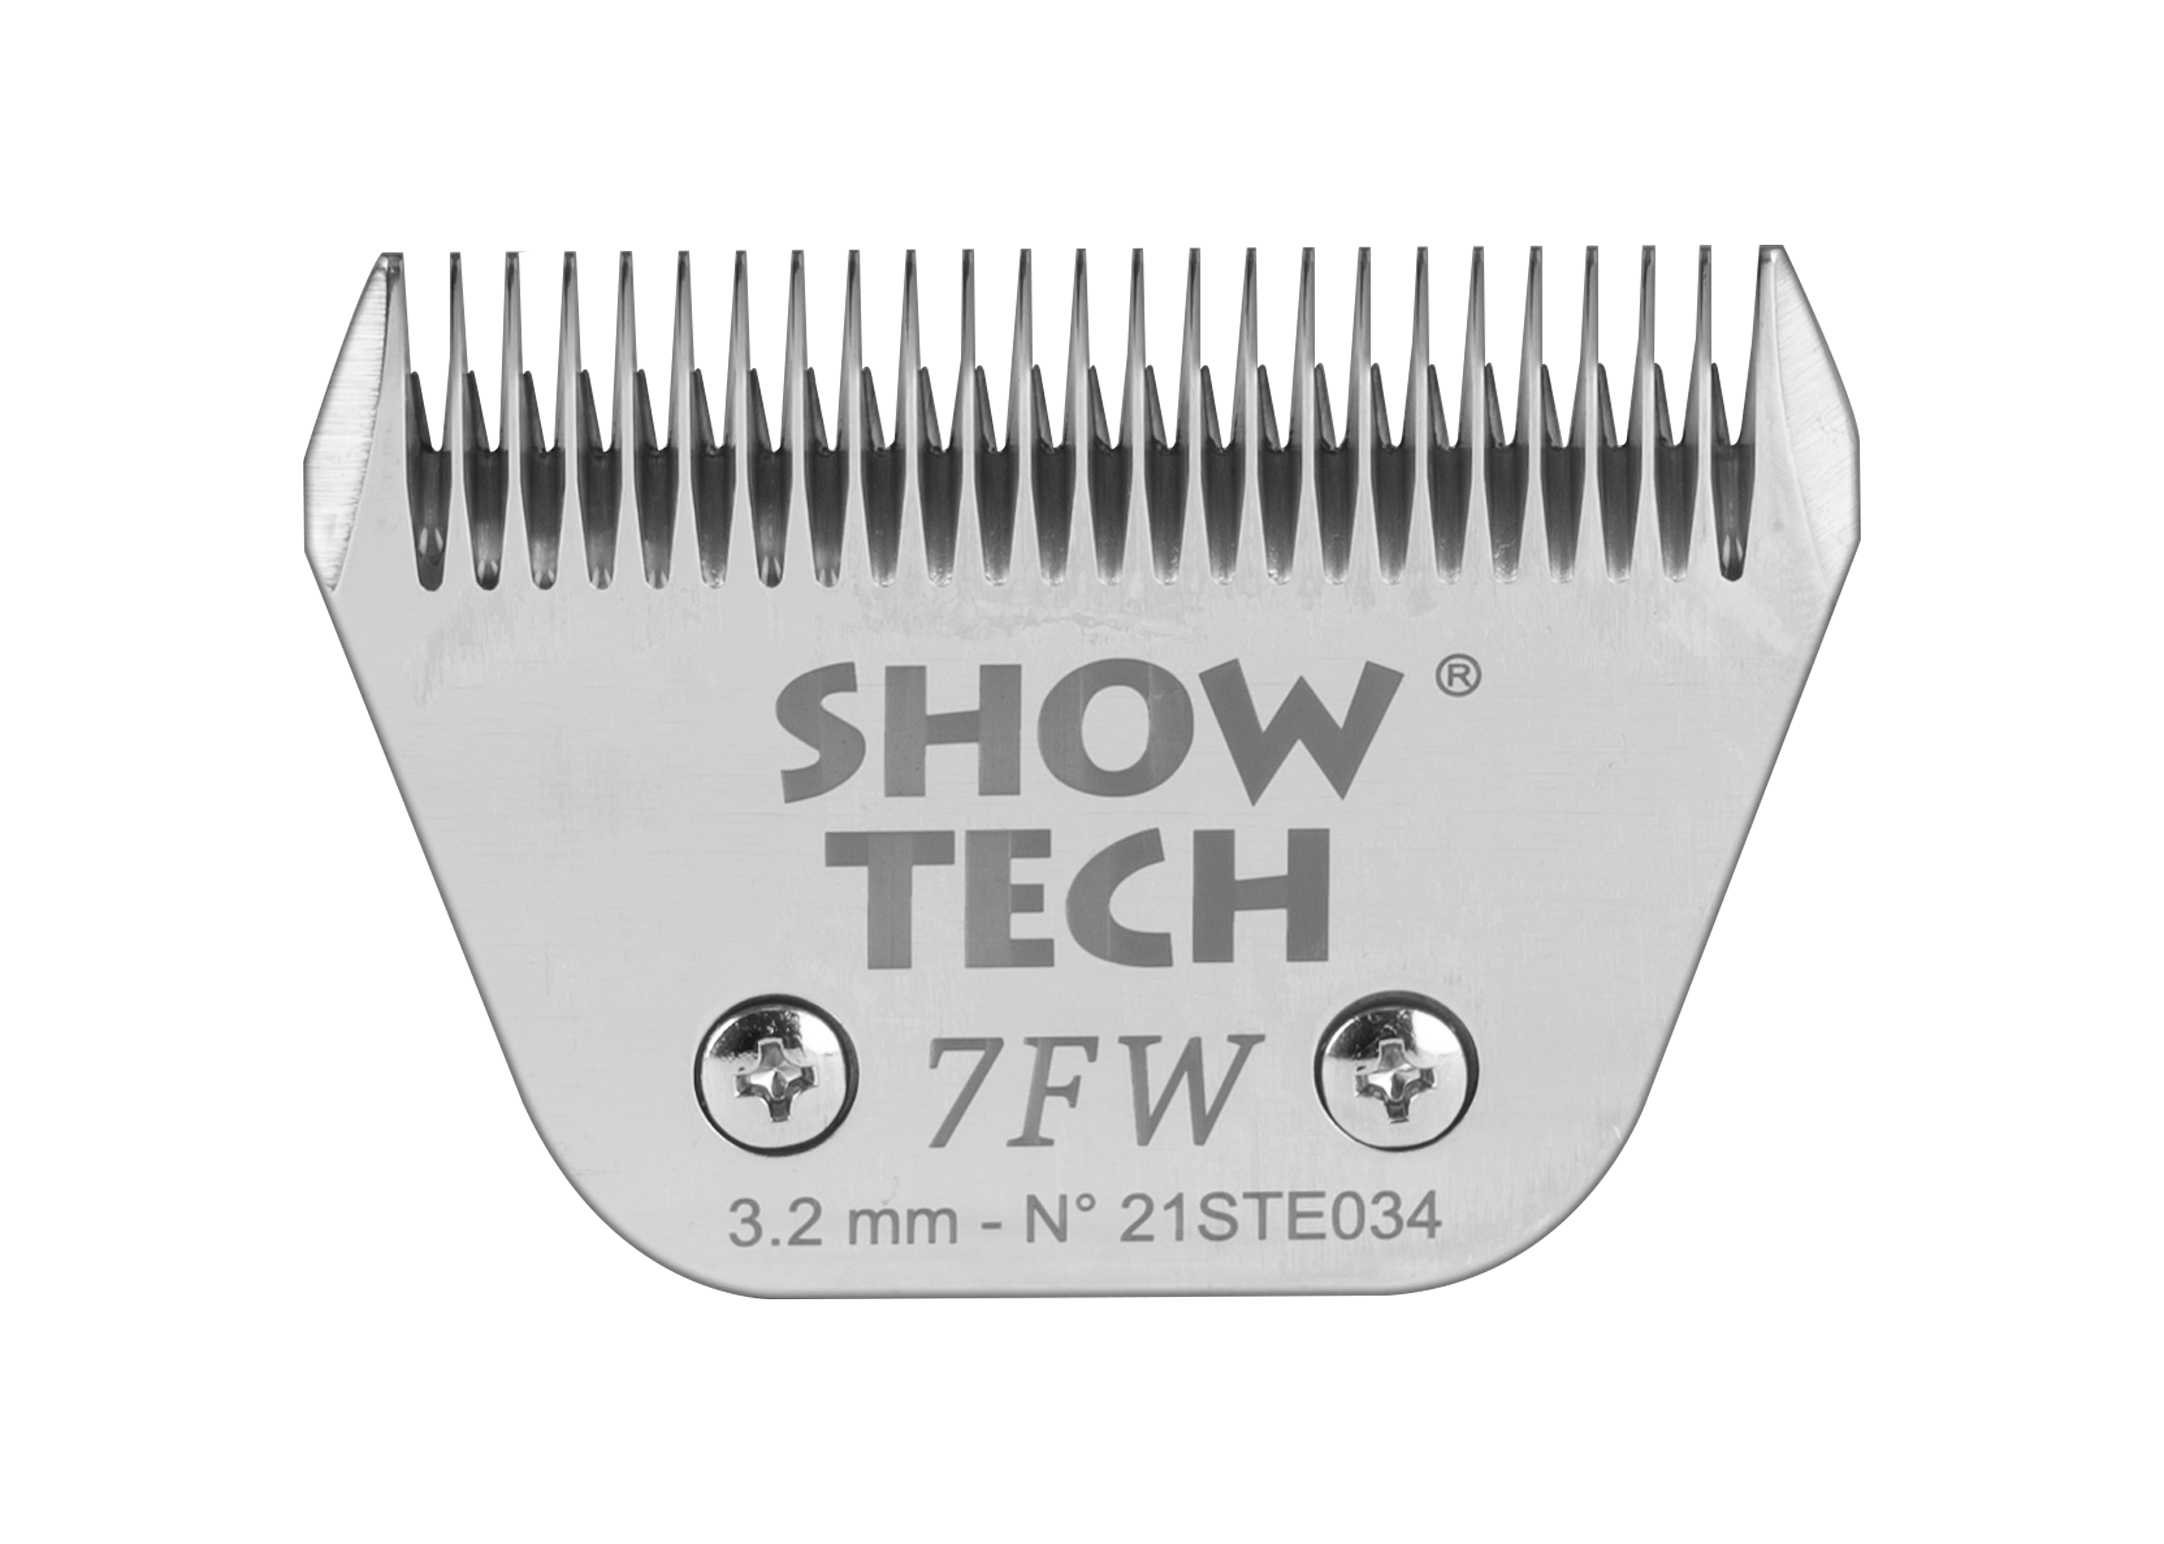 Show Tech Pro Blades snap-on Clipper Blade #7FW - 3,2mm